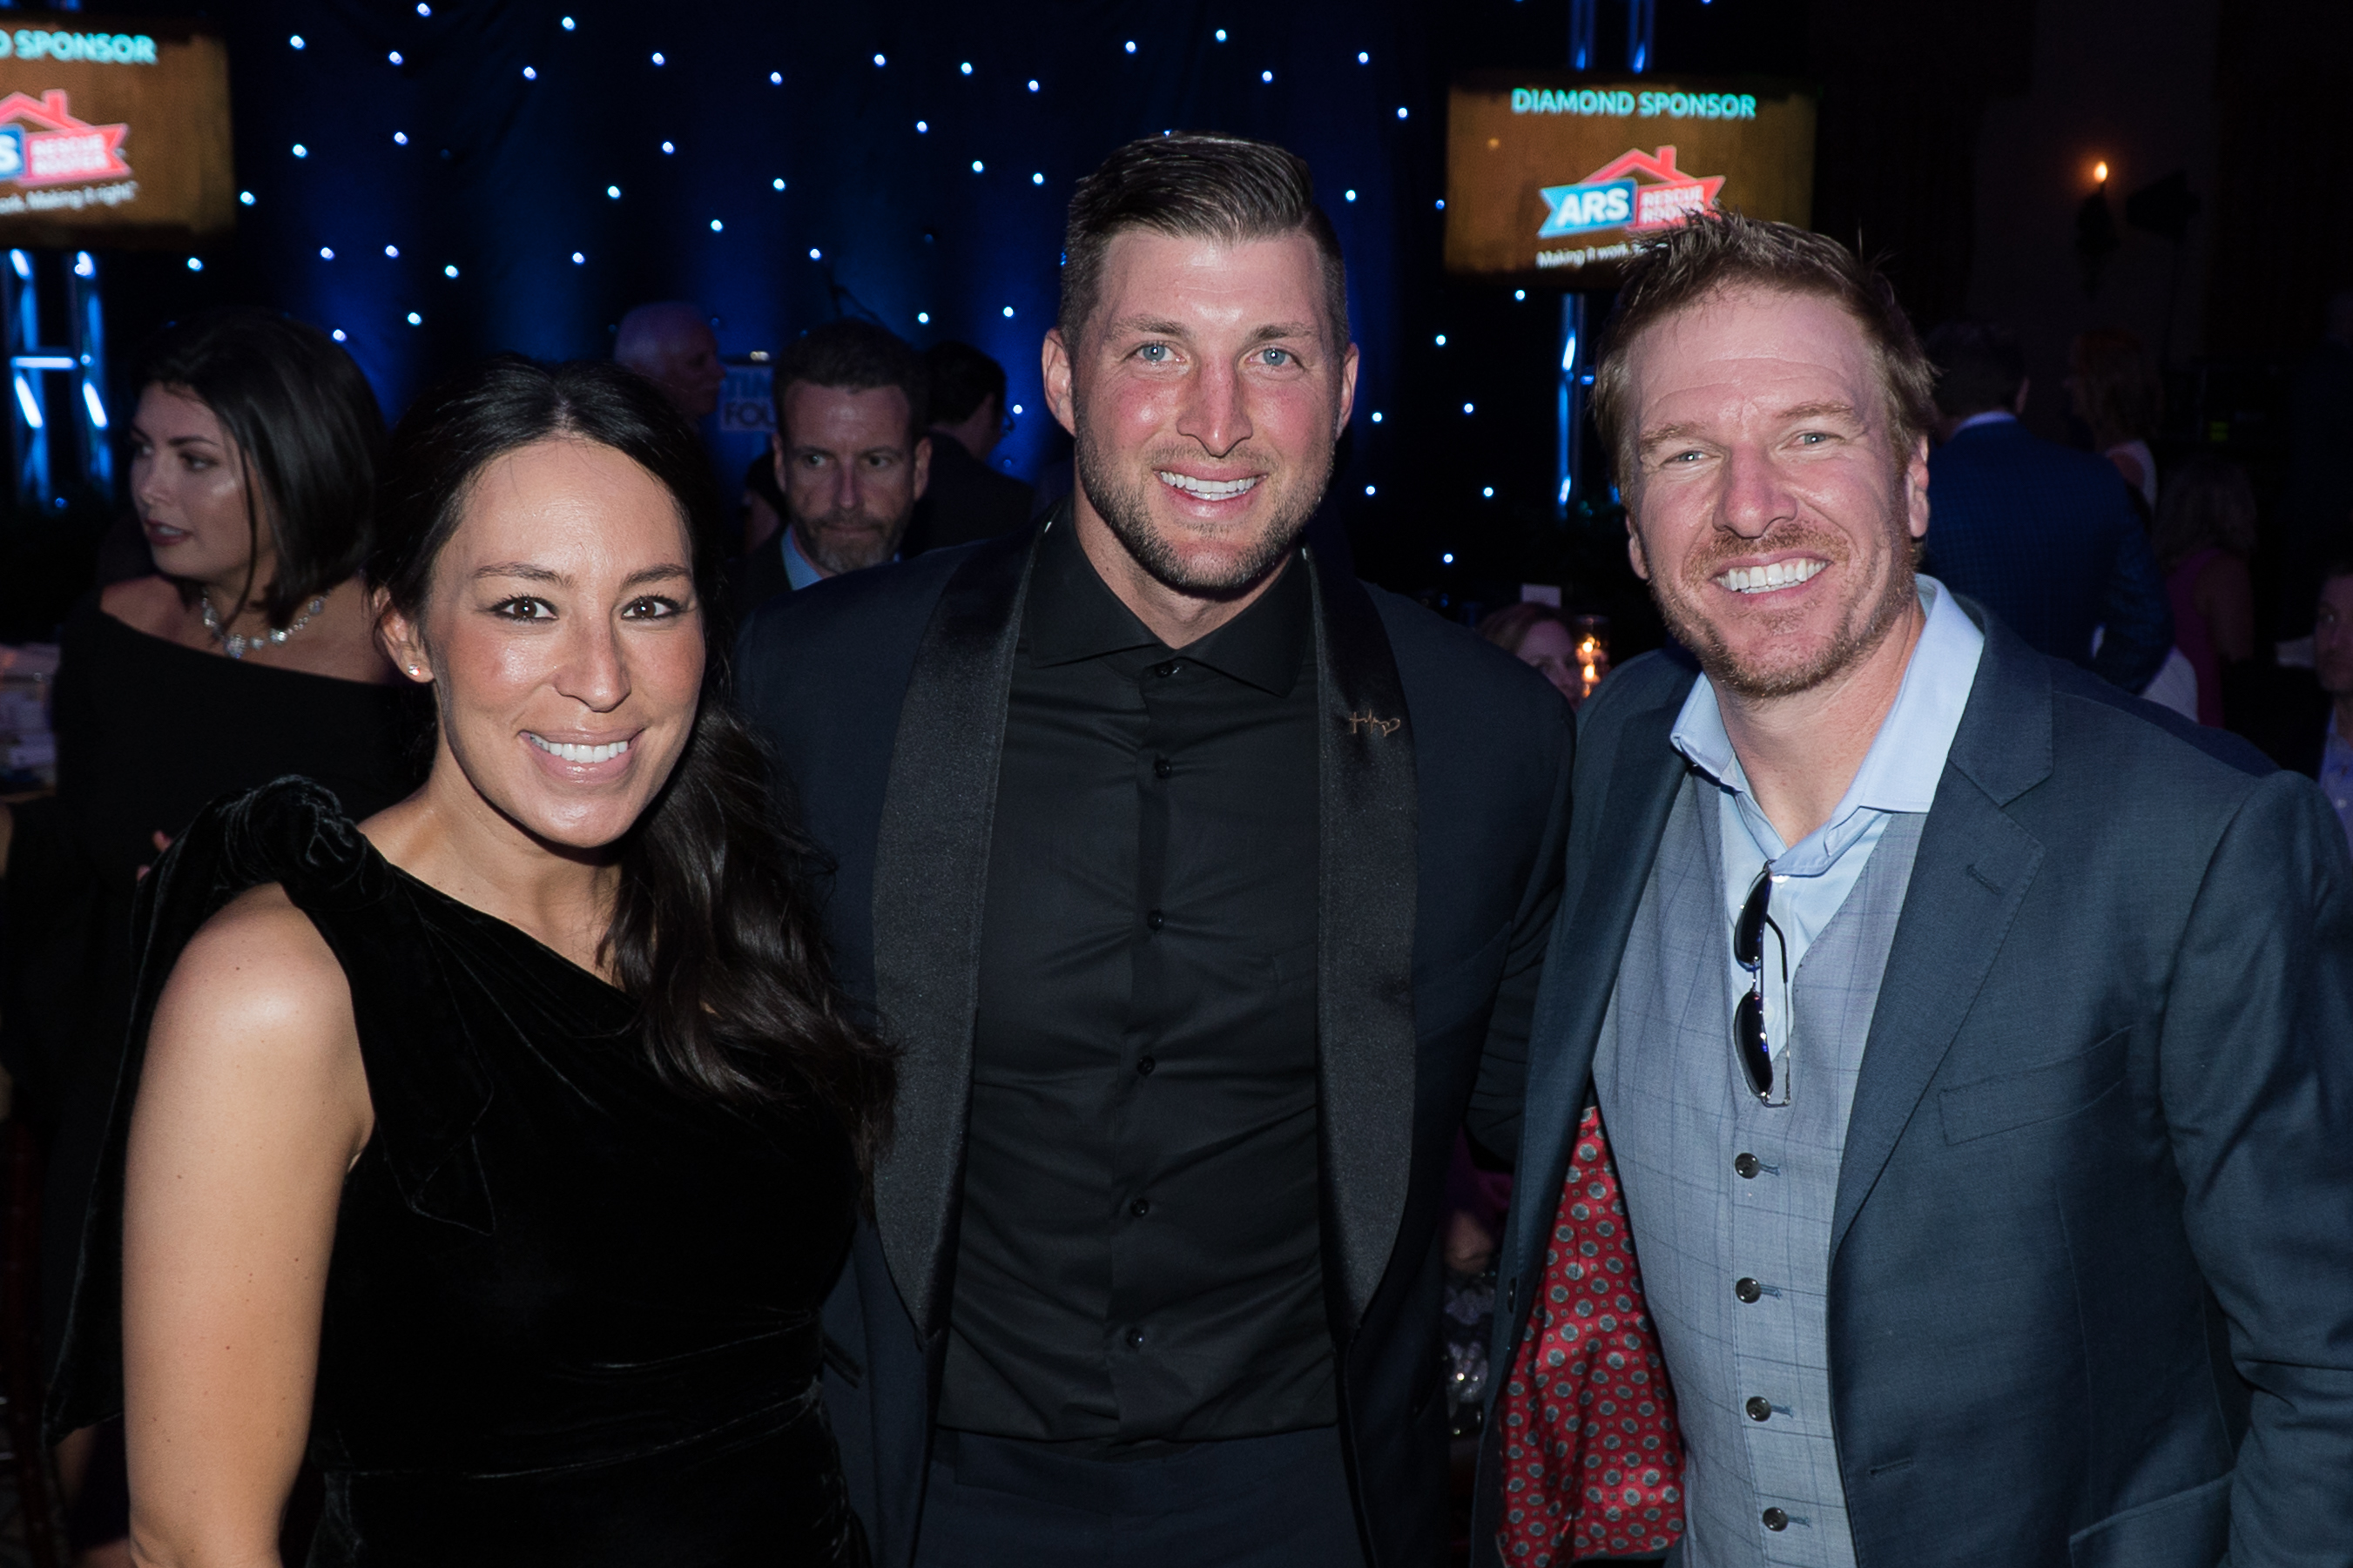 Tim_Tebow_with_Chip__Joanna_Gaines.jpg